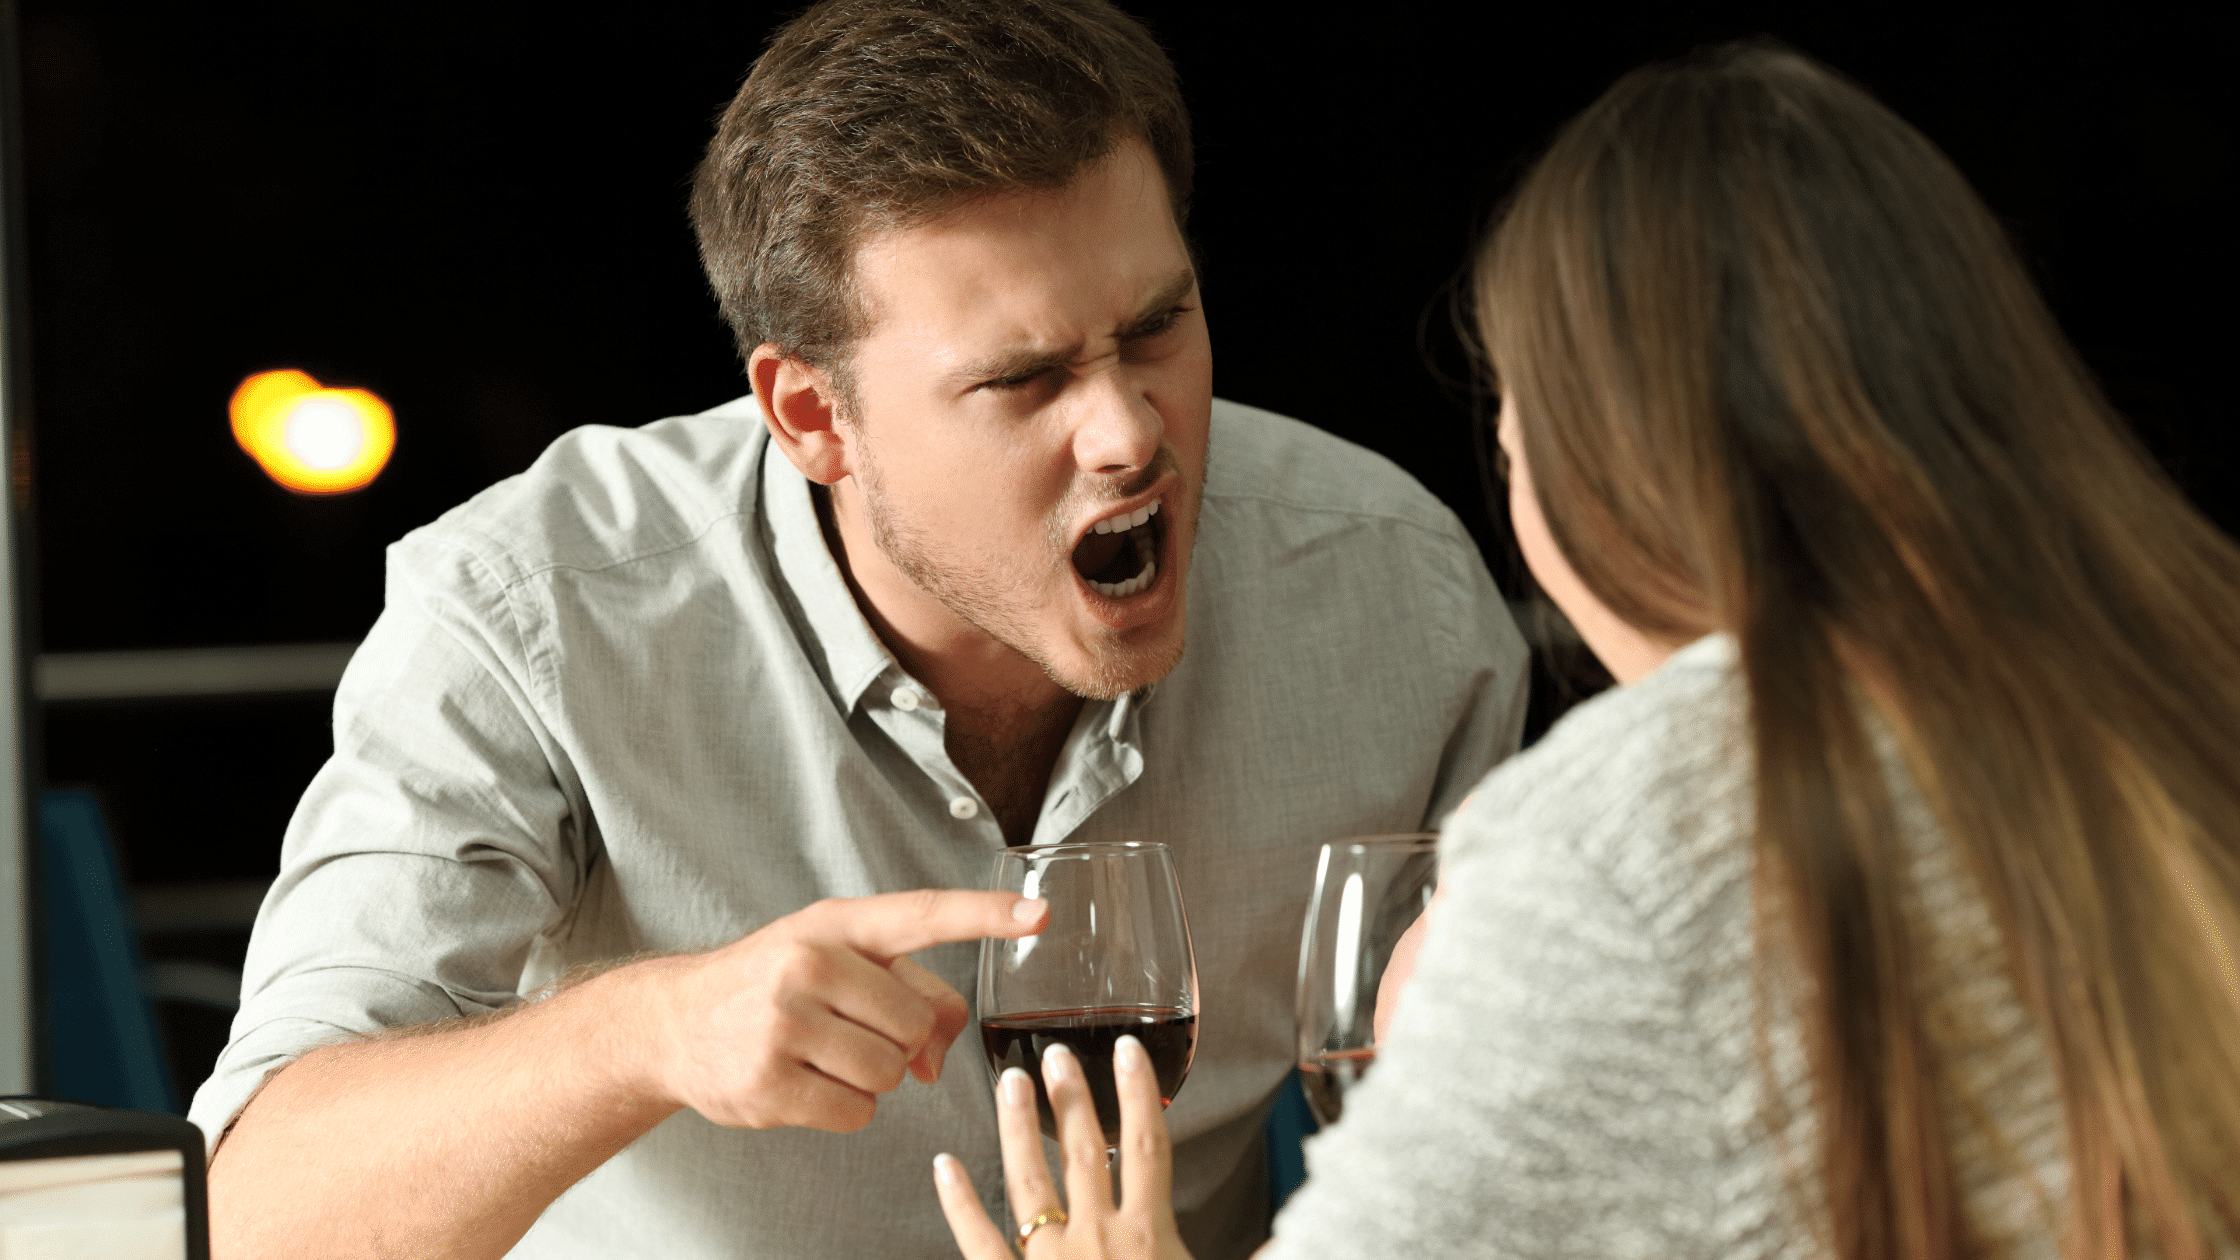 How to divorce on grounds of Unreasonable Behaviour